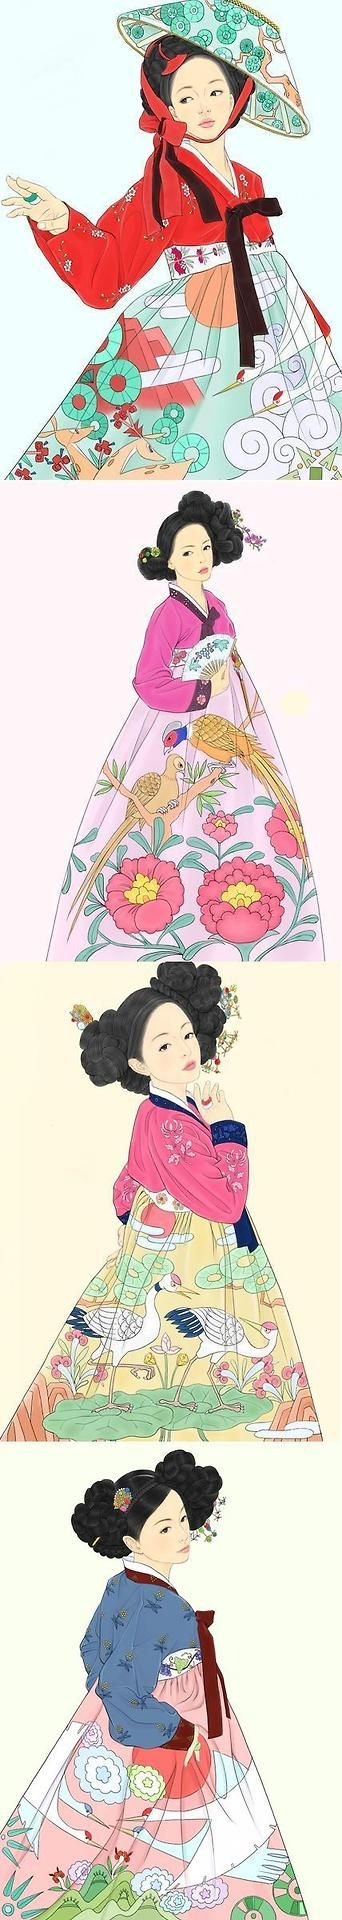 Hanbok, Korean traditional dress Fashion illustration